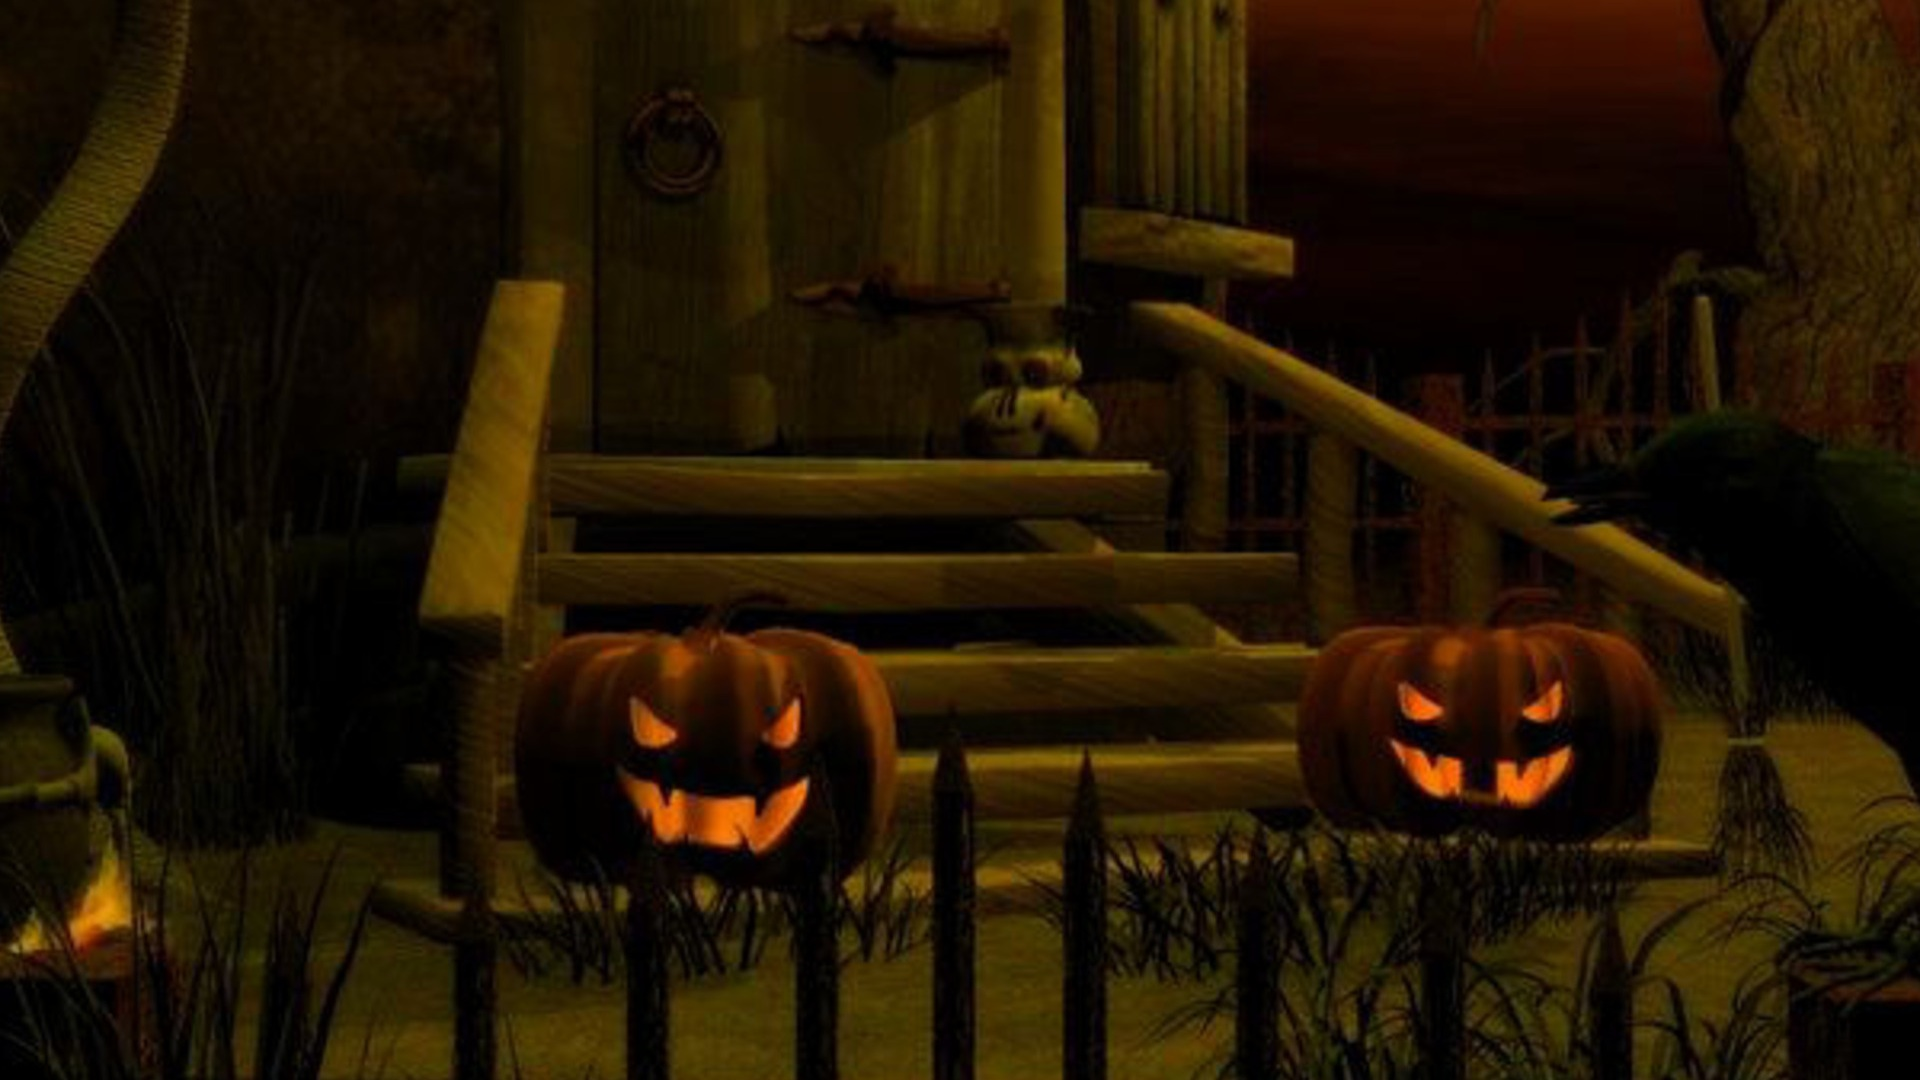 halloween wallpapers 93 free wallpapers free desktop wallpapers hd - Desktop Wallpaper Halloween